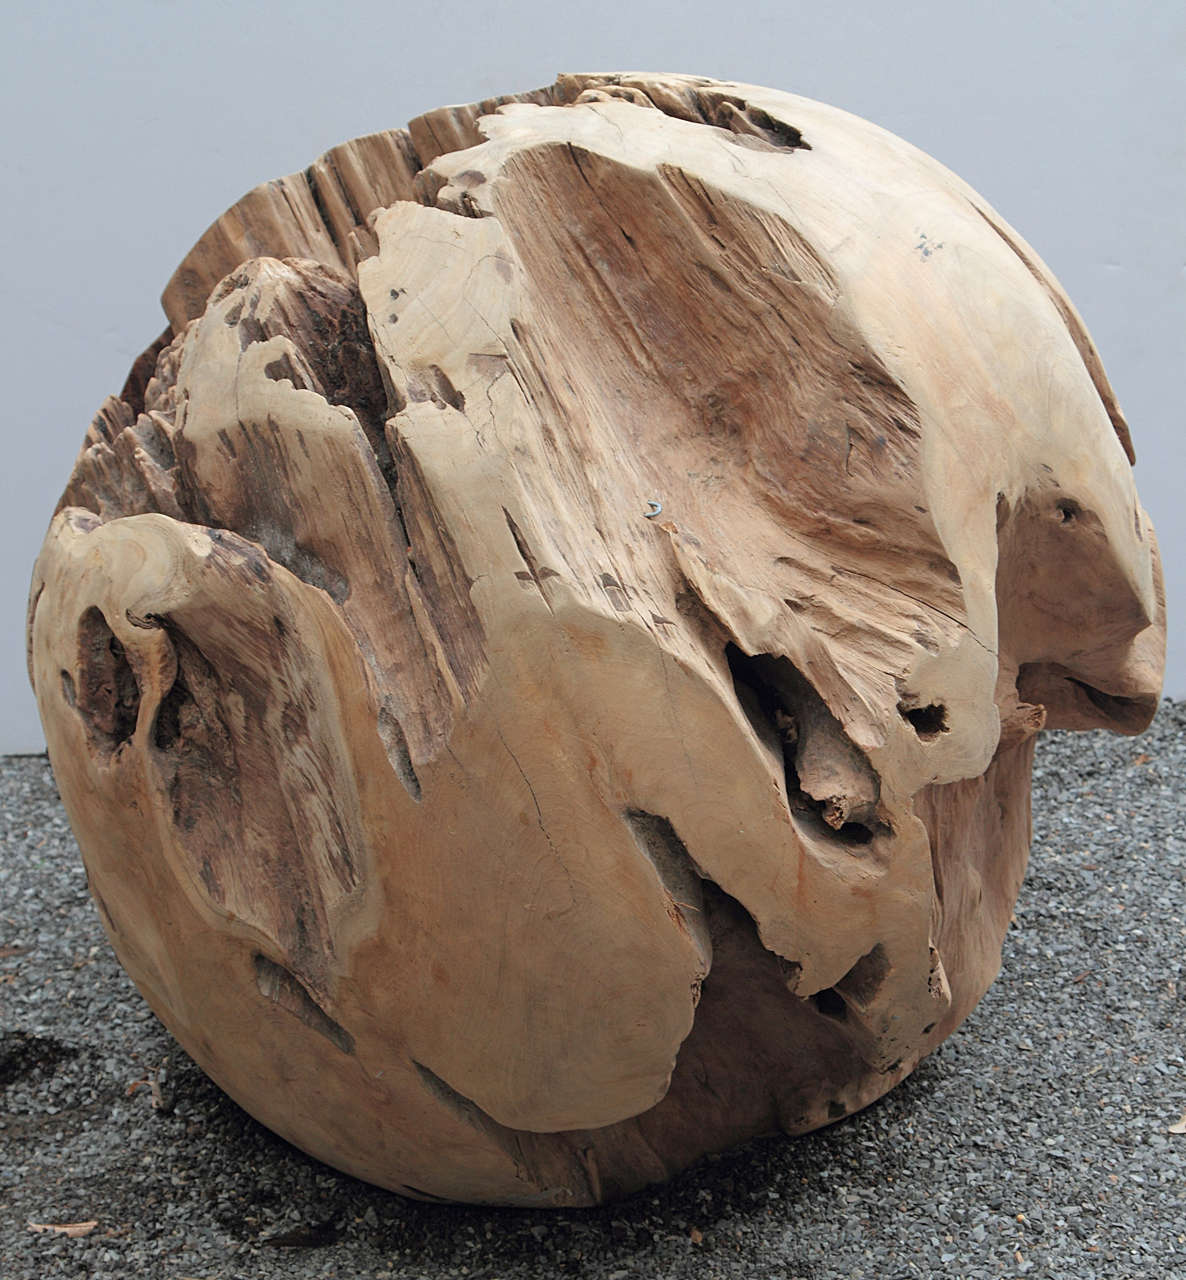 Large Teak Balls For Home Decor Or Garden Accessories For